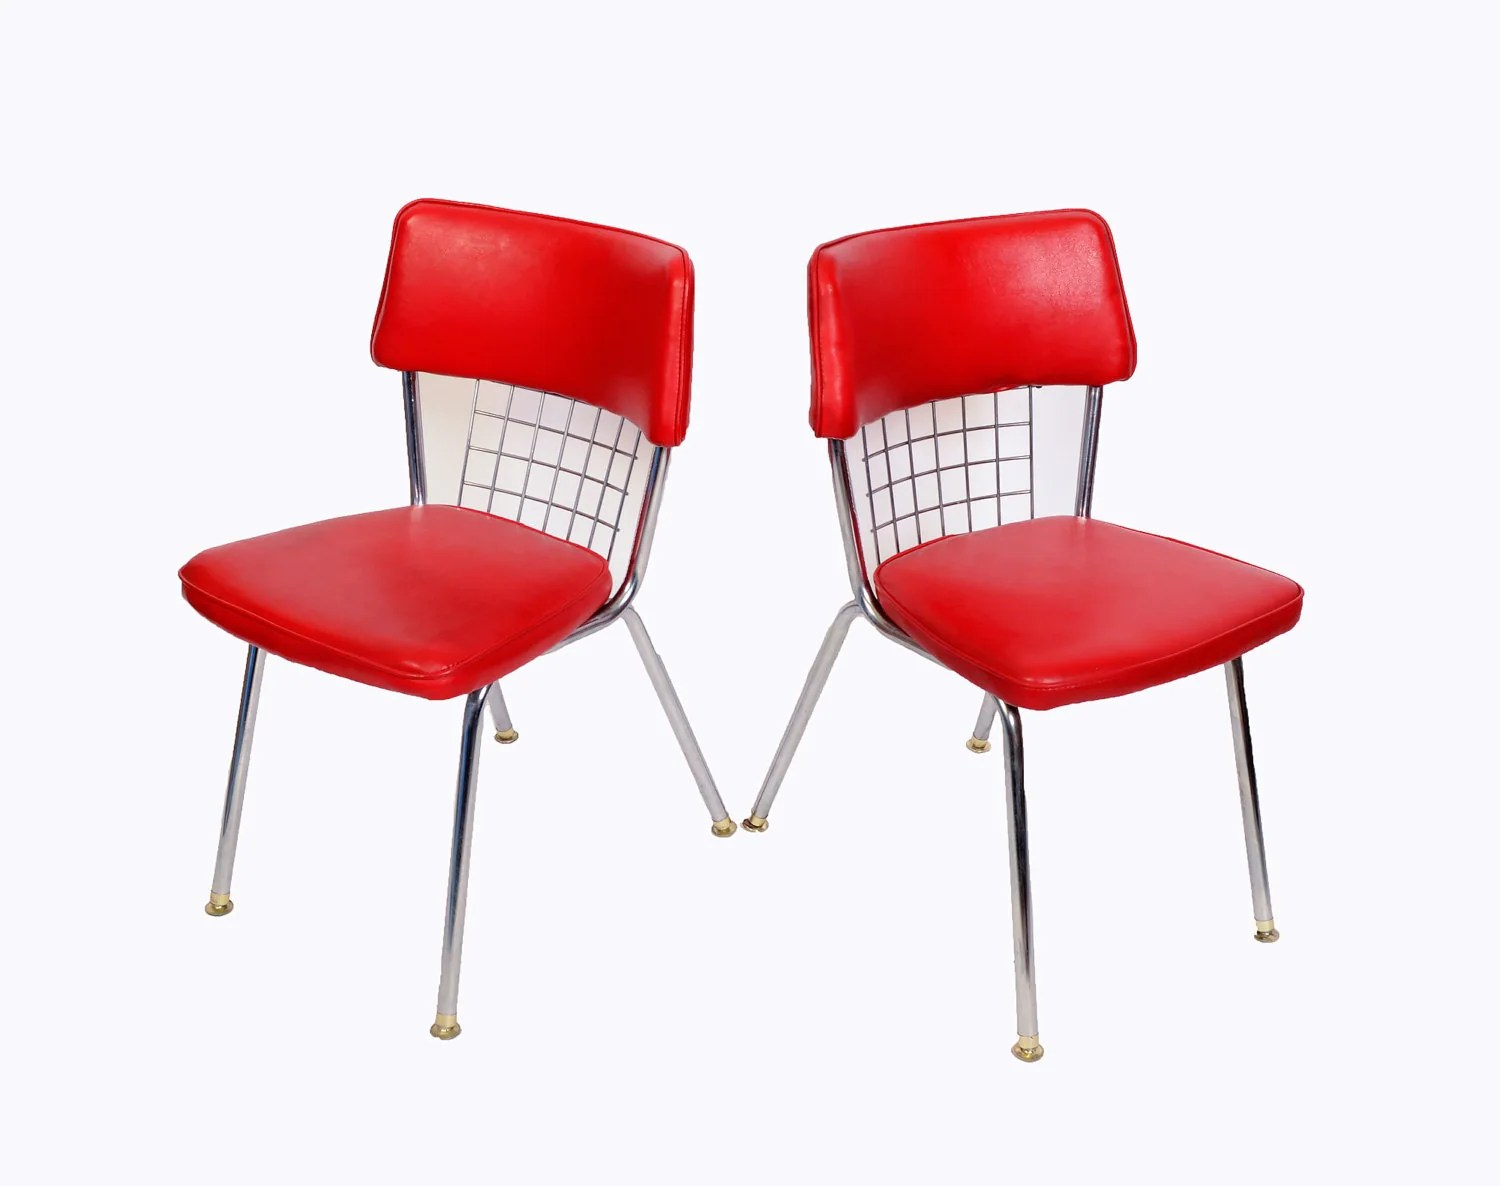 Chrome Dinette Chairs Set Of 6 Red Seats Howell Modern Metal Furniture Retro Diner Haute Juice